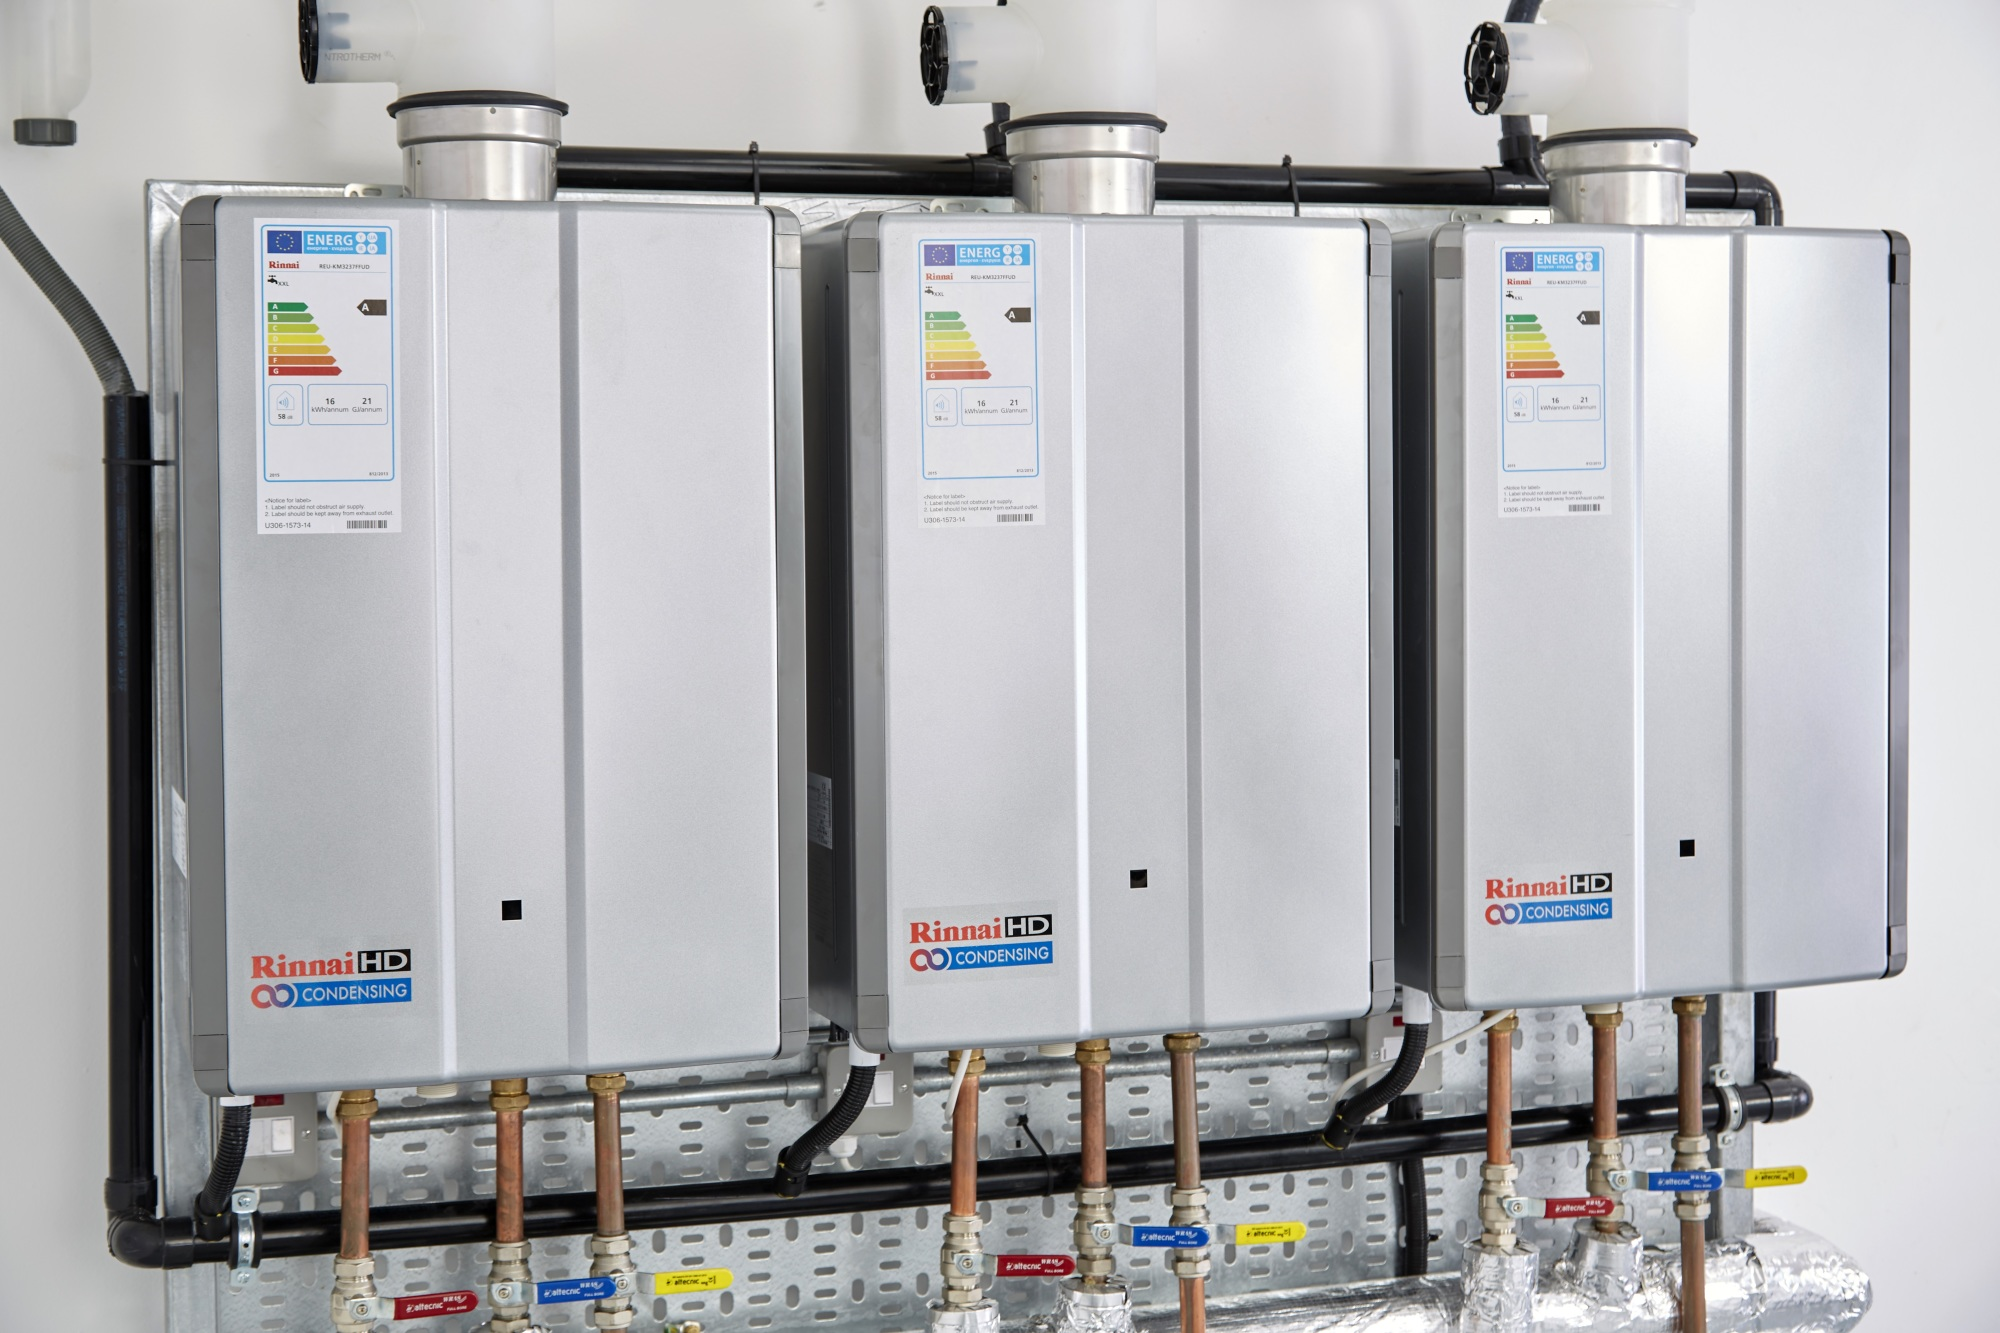 Rinnai continuous flow water heaters